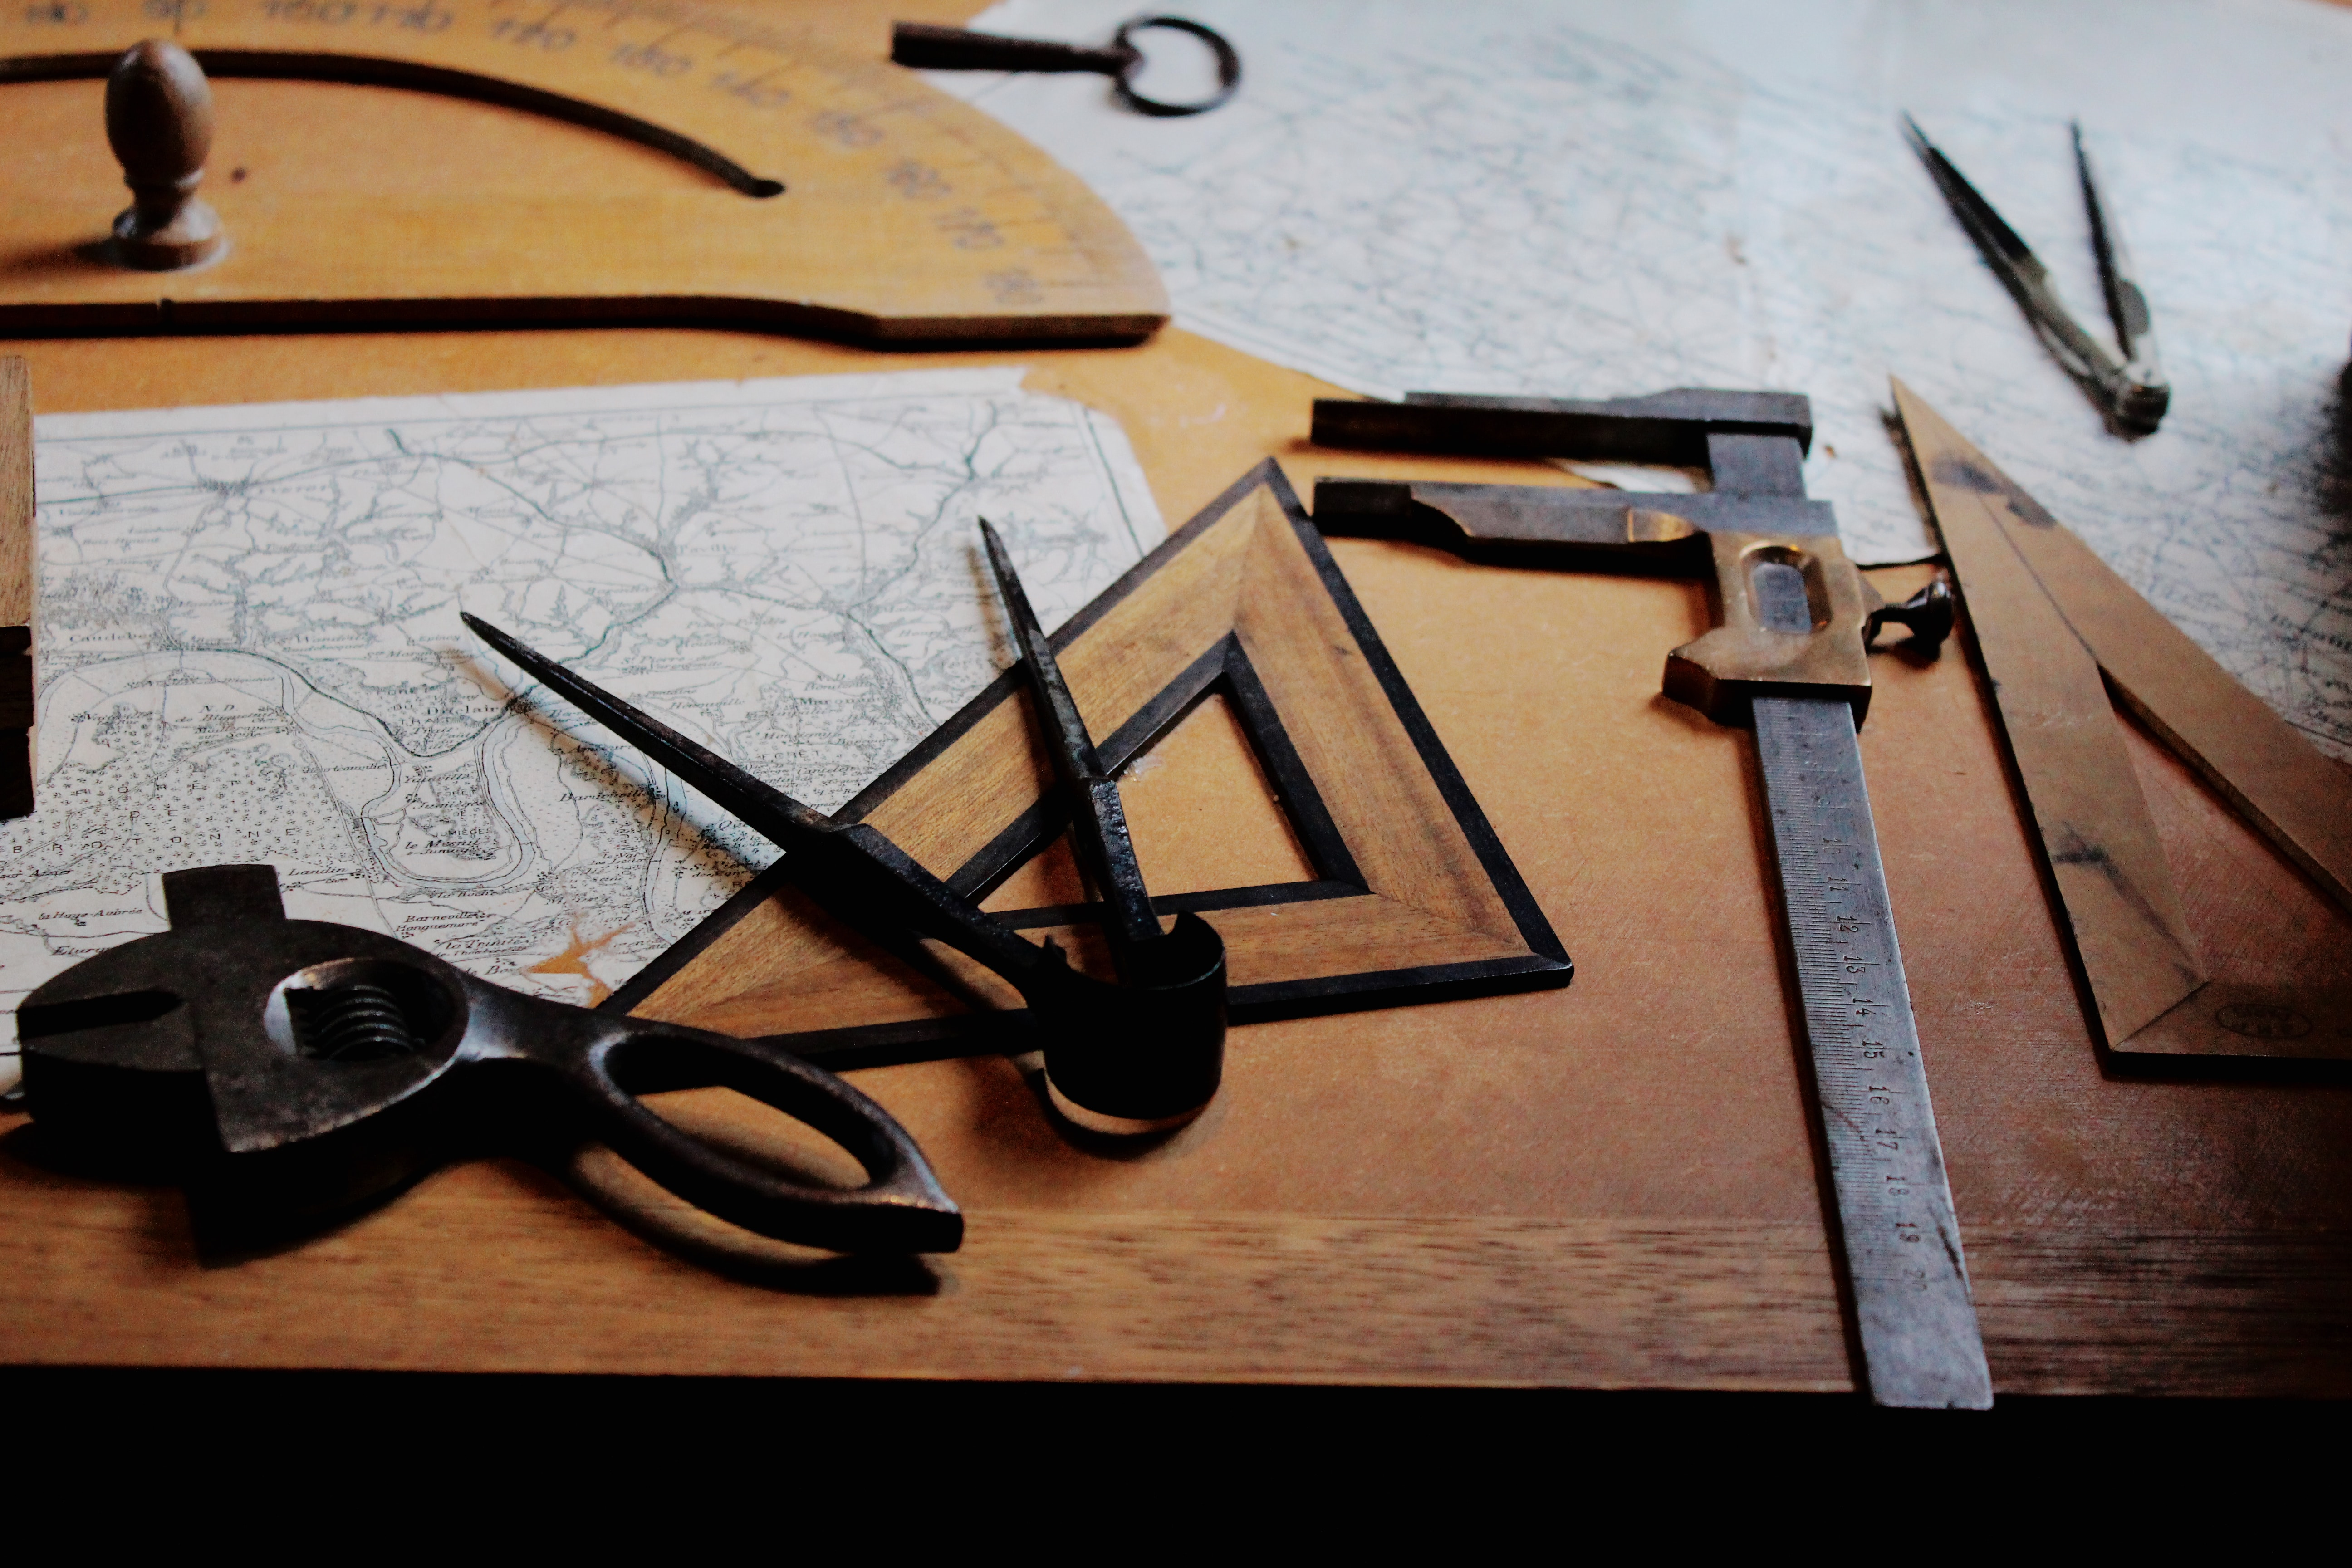 Drafting instruments on top of a table